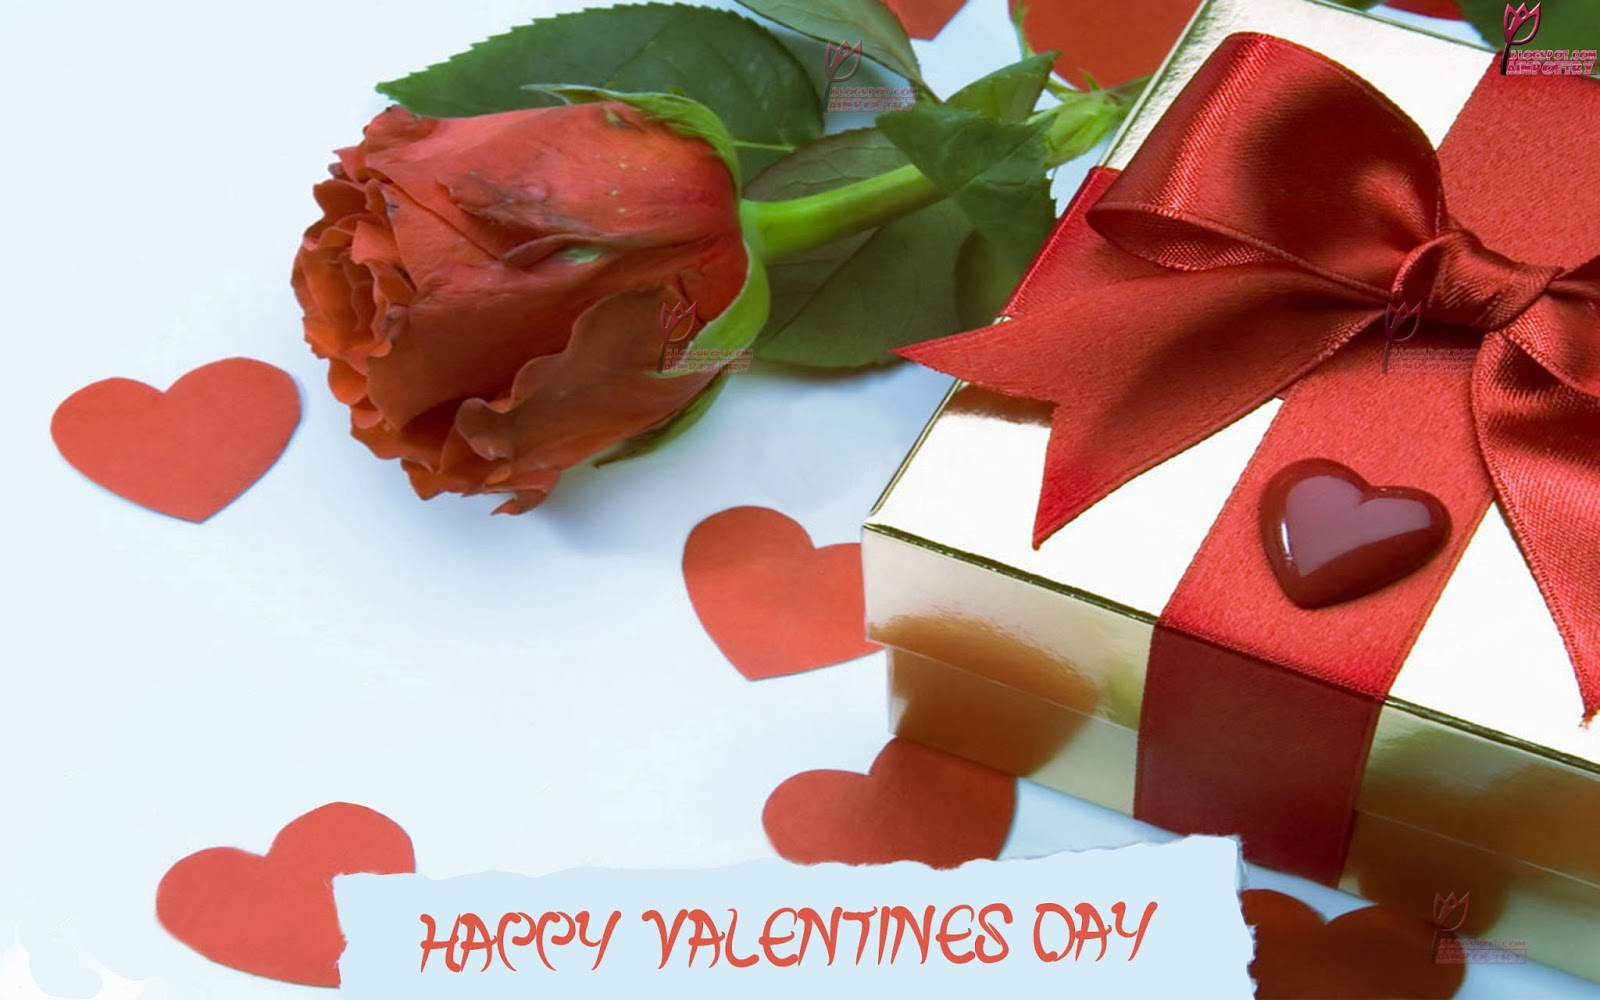 Happy Valentines Day Wishes Wallpaper With A Special gift Image HD